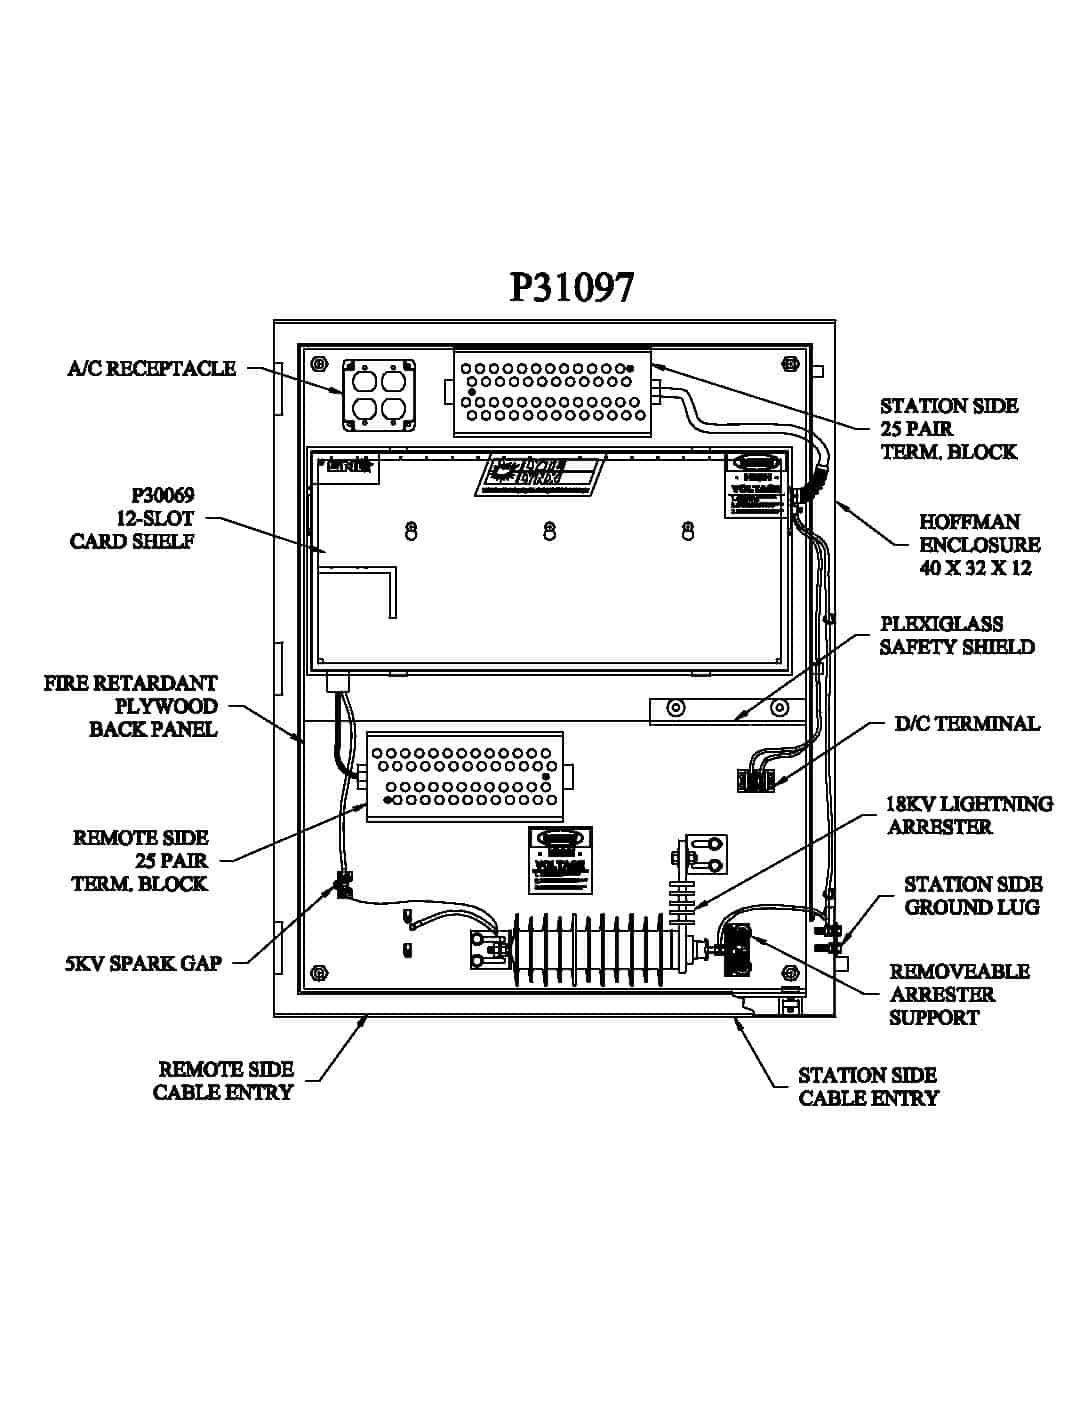 P31097 Turnkey Protection Packages – 12 slot PDF thumbnail